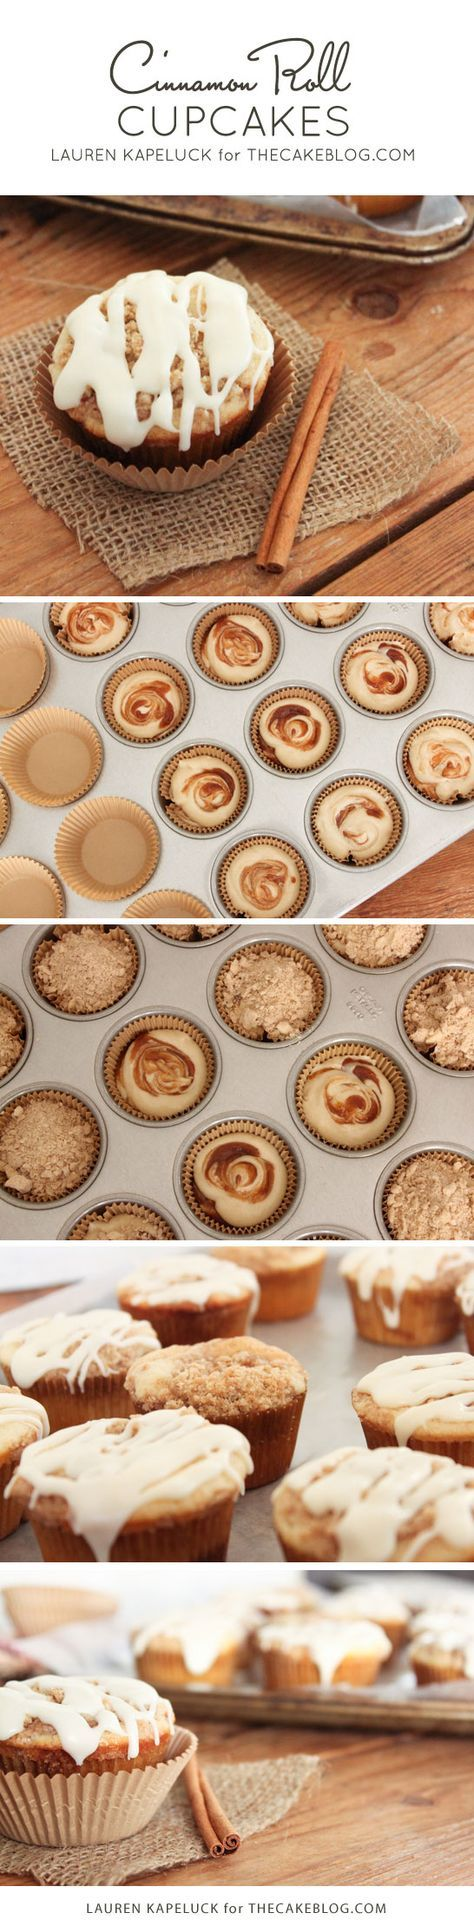 CINNAMON ROLL CUPCAKES a recipe by Lauren Kapeluck (makes 24 cupcakes) For the Cake: 2 1/2 cups all-purpose flour 2 tsp baking powder 1/2 ts...